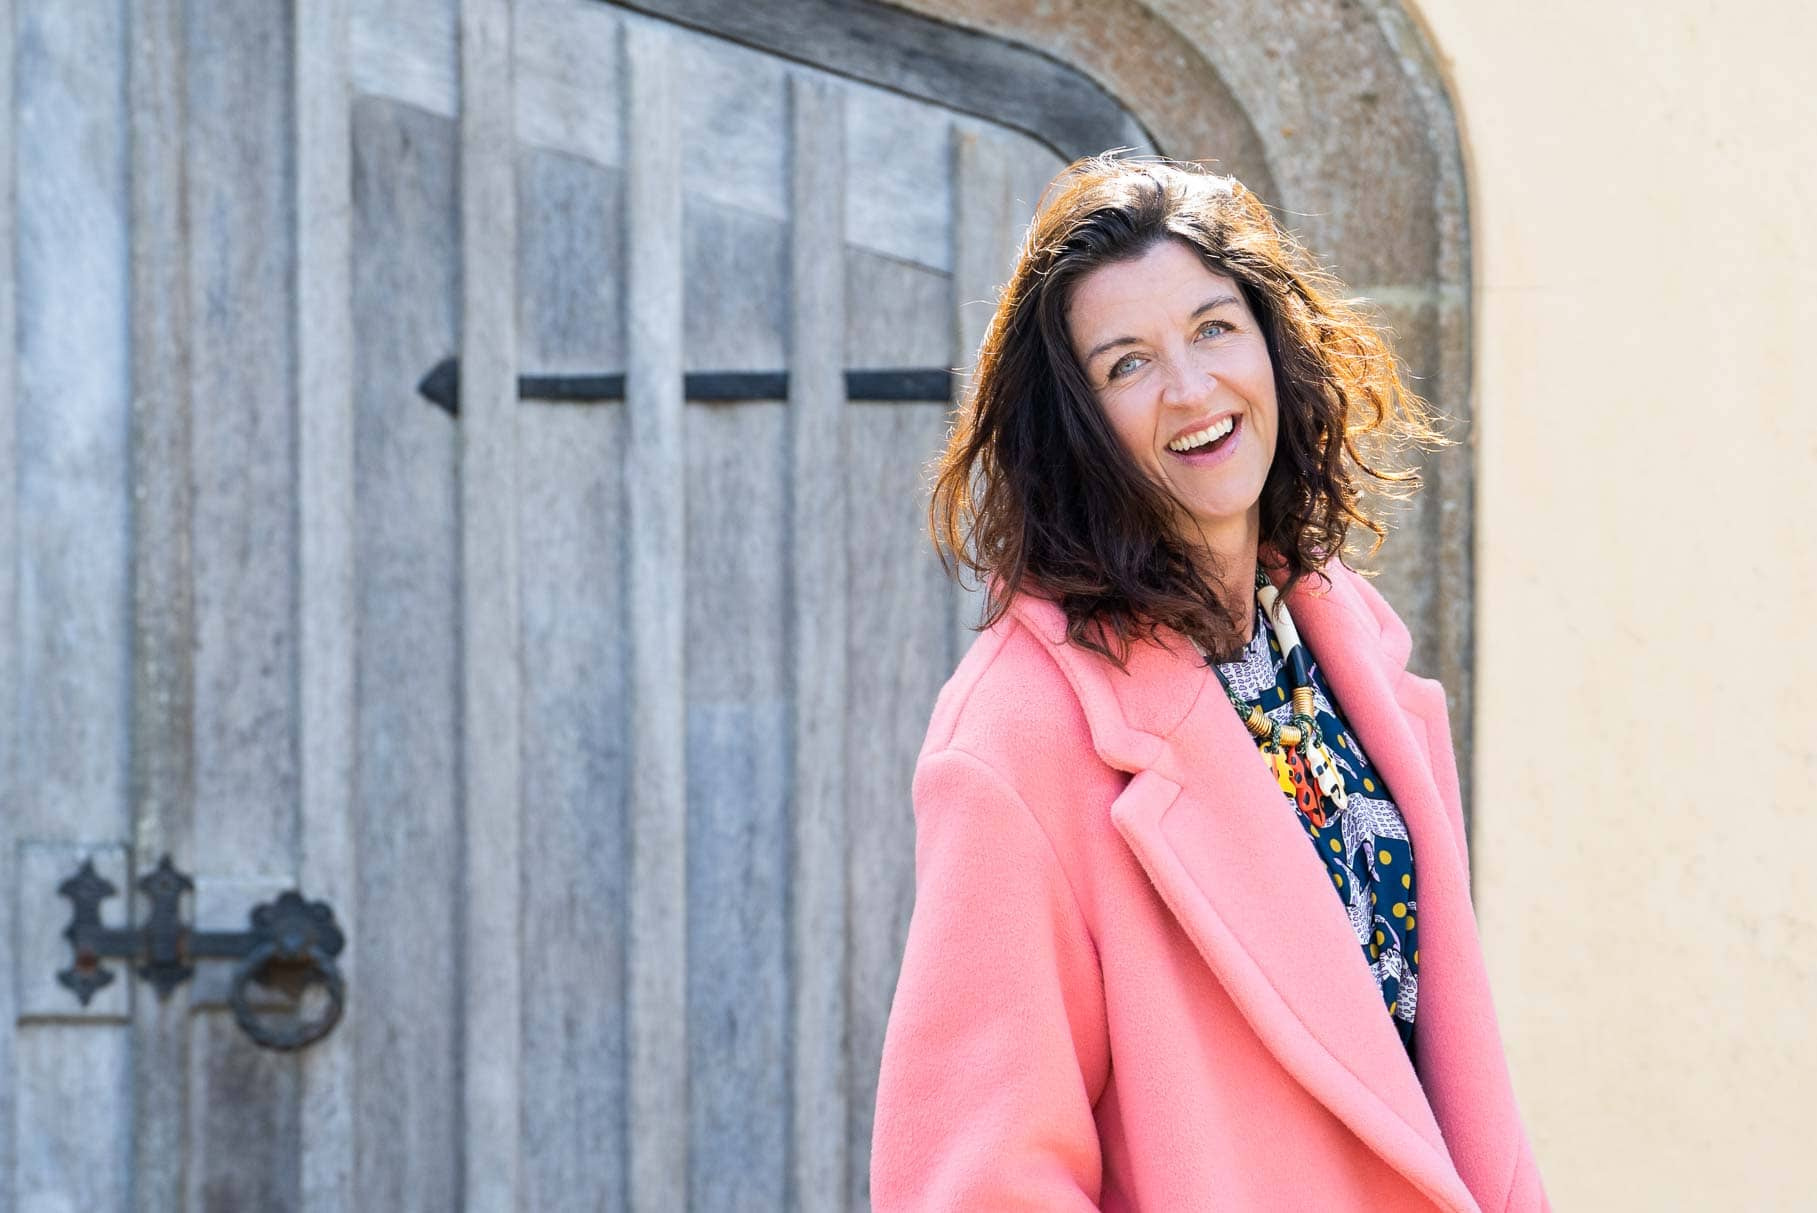 business woman on a branding photography shoot wearing a bright pink coat